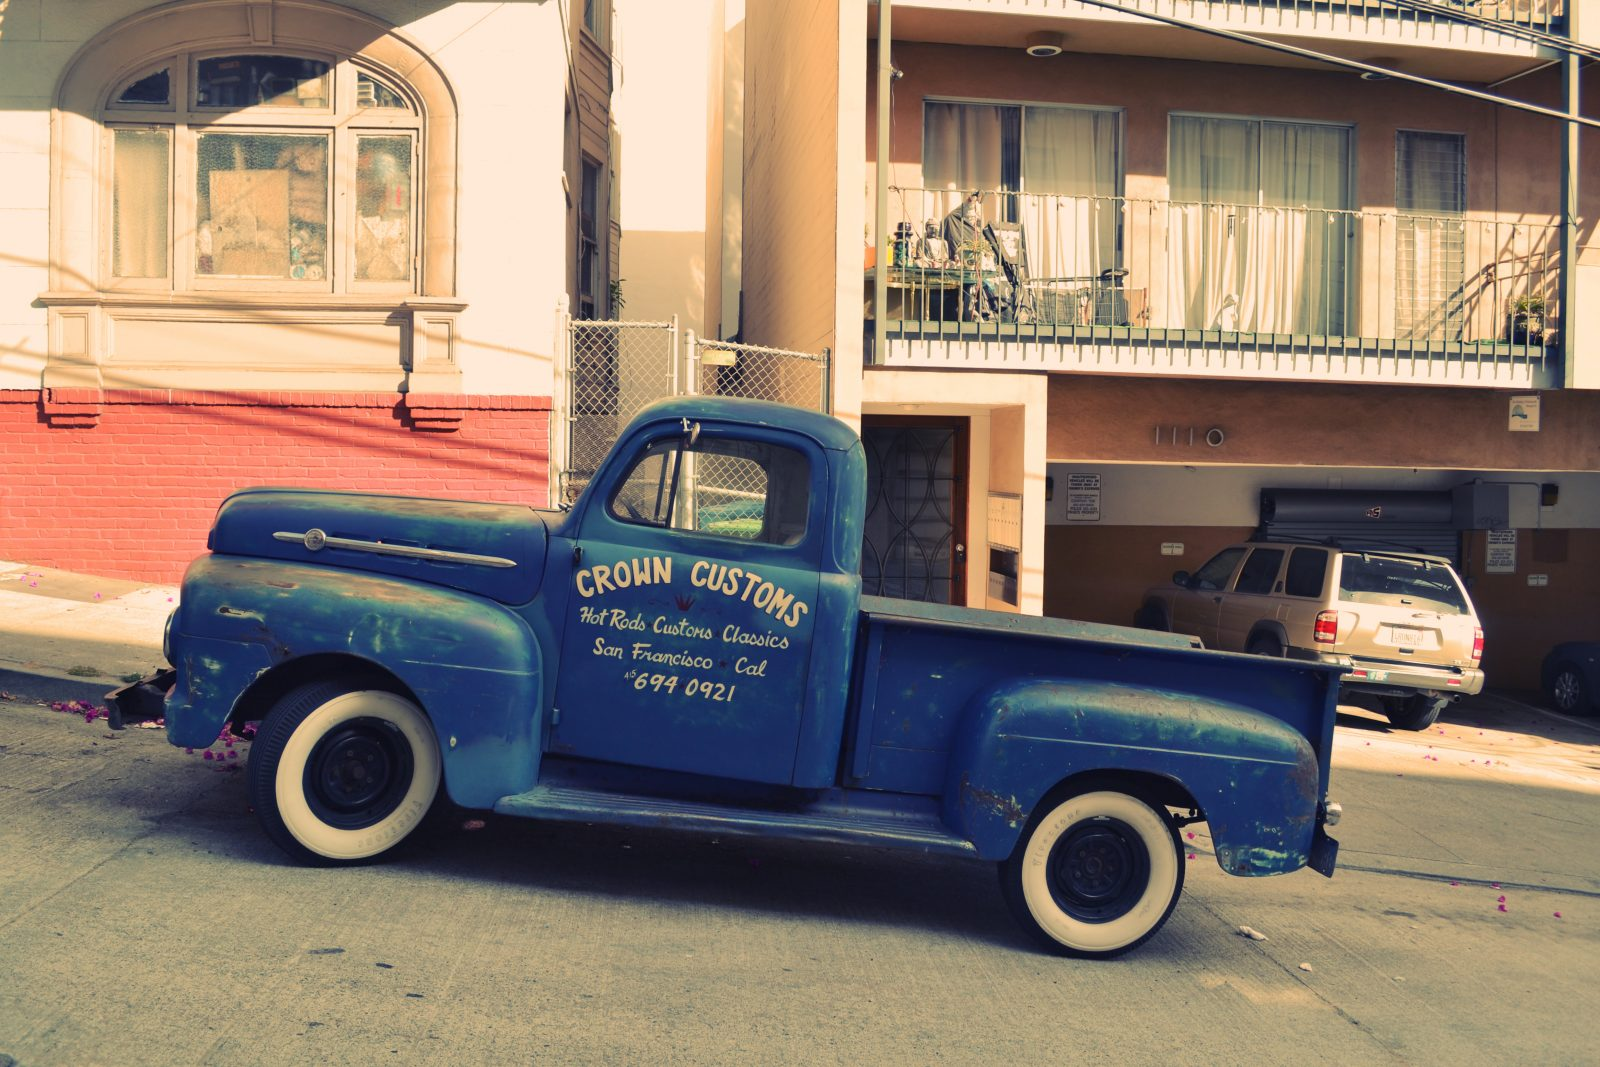 Old Truck Free Stock Photos Life Of Pix